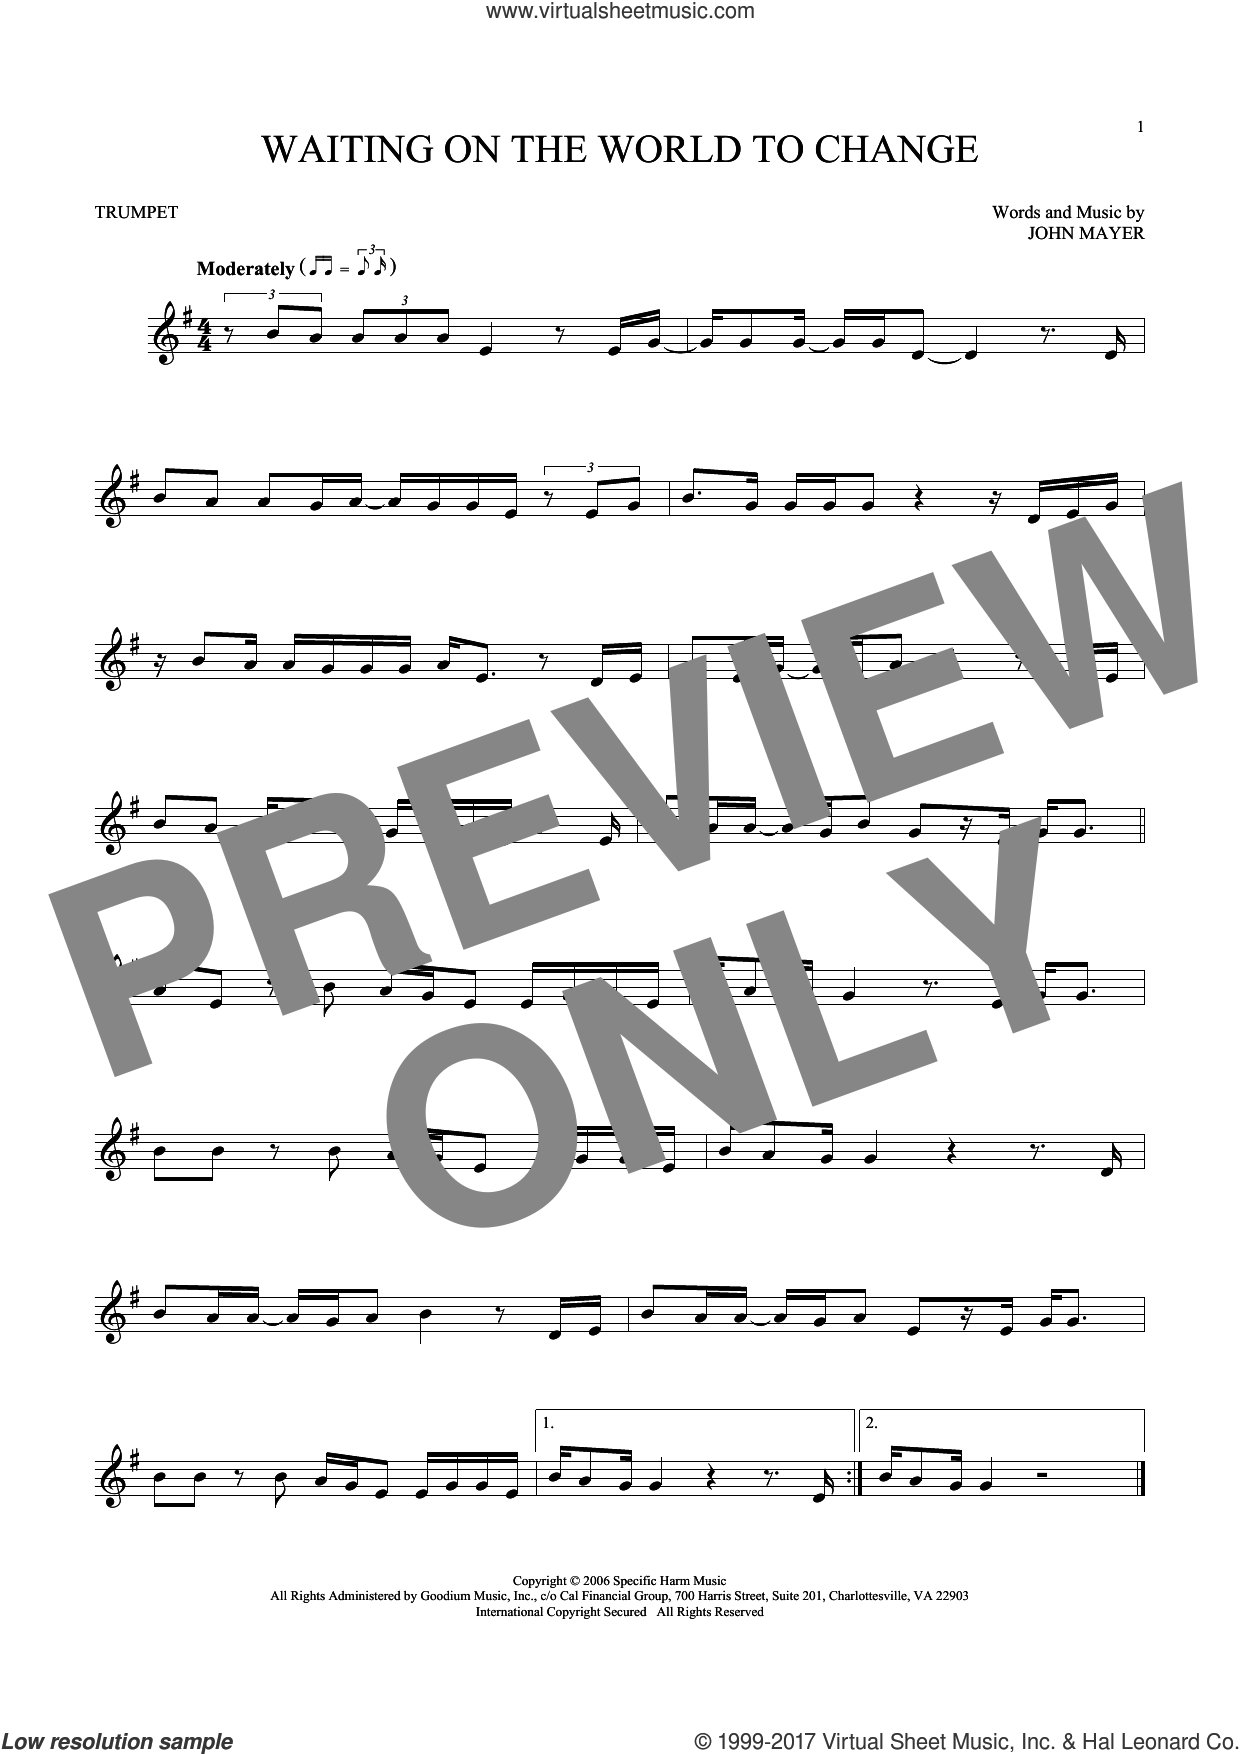 Waiting On The World To Change sheet music for trumpet solo by John Mayer, intermediate